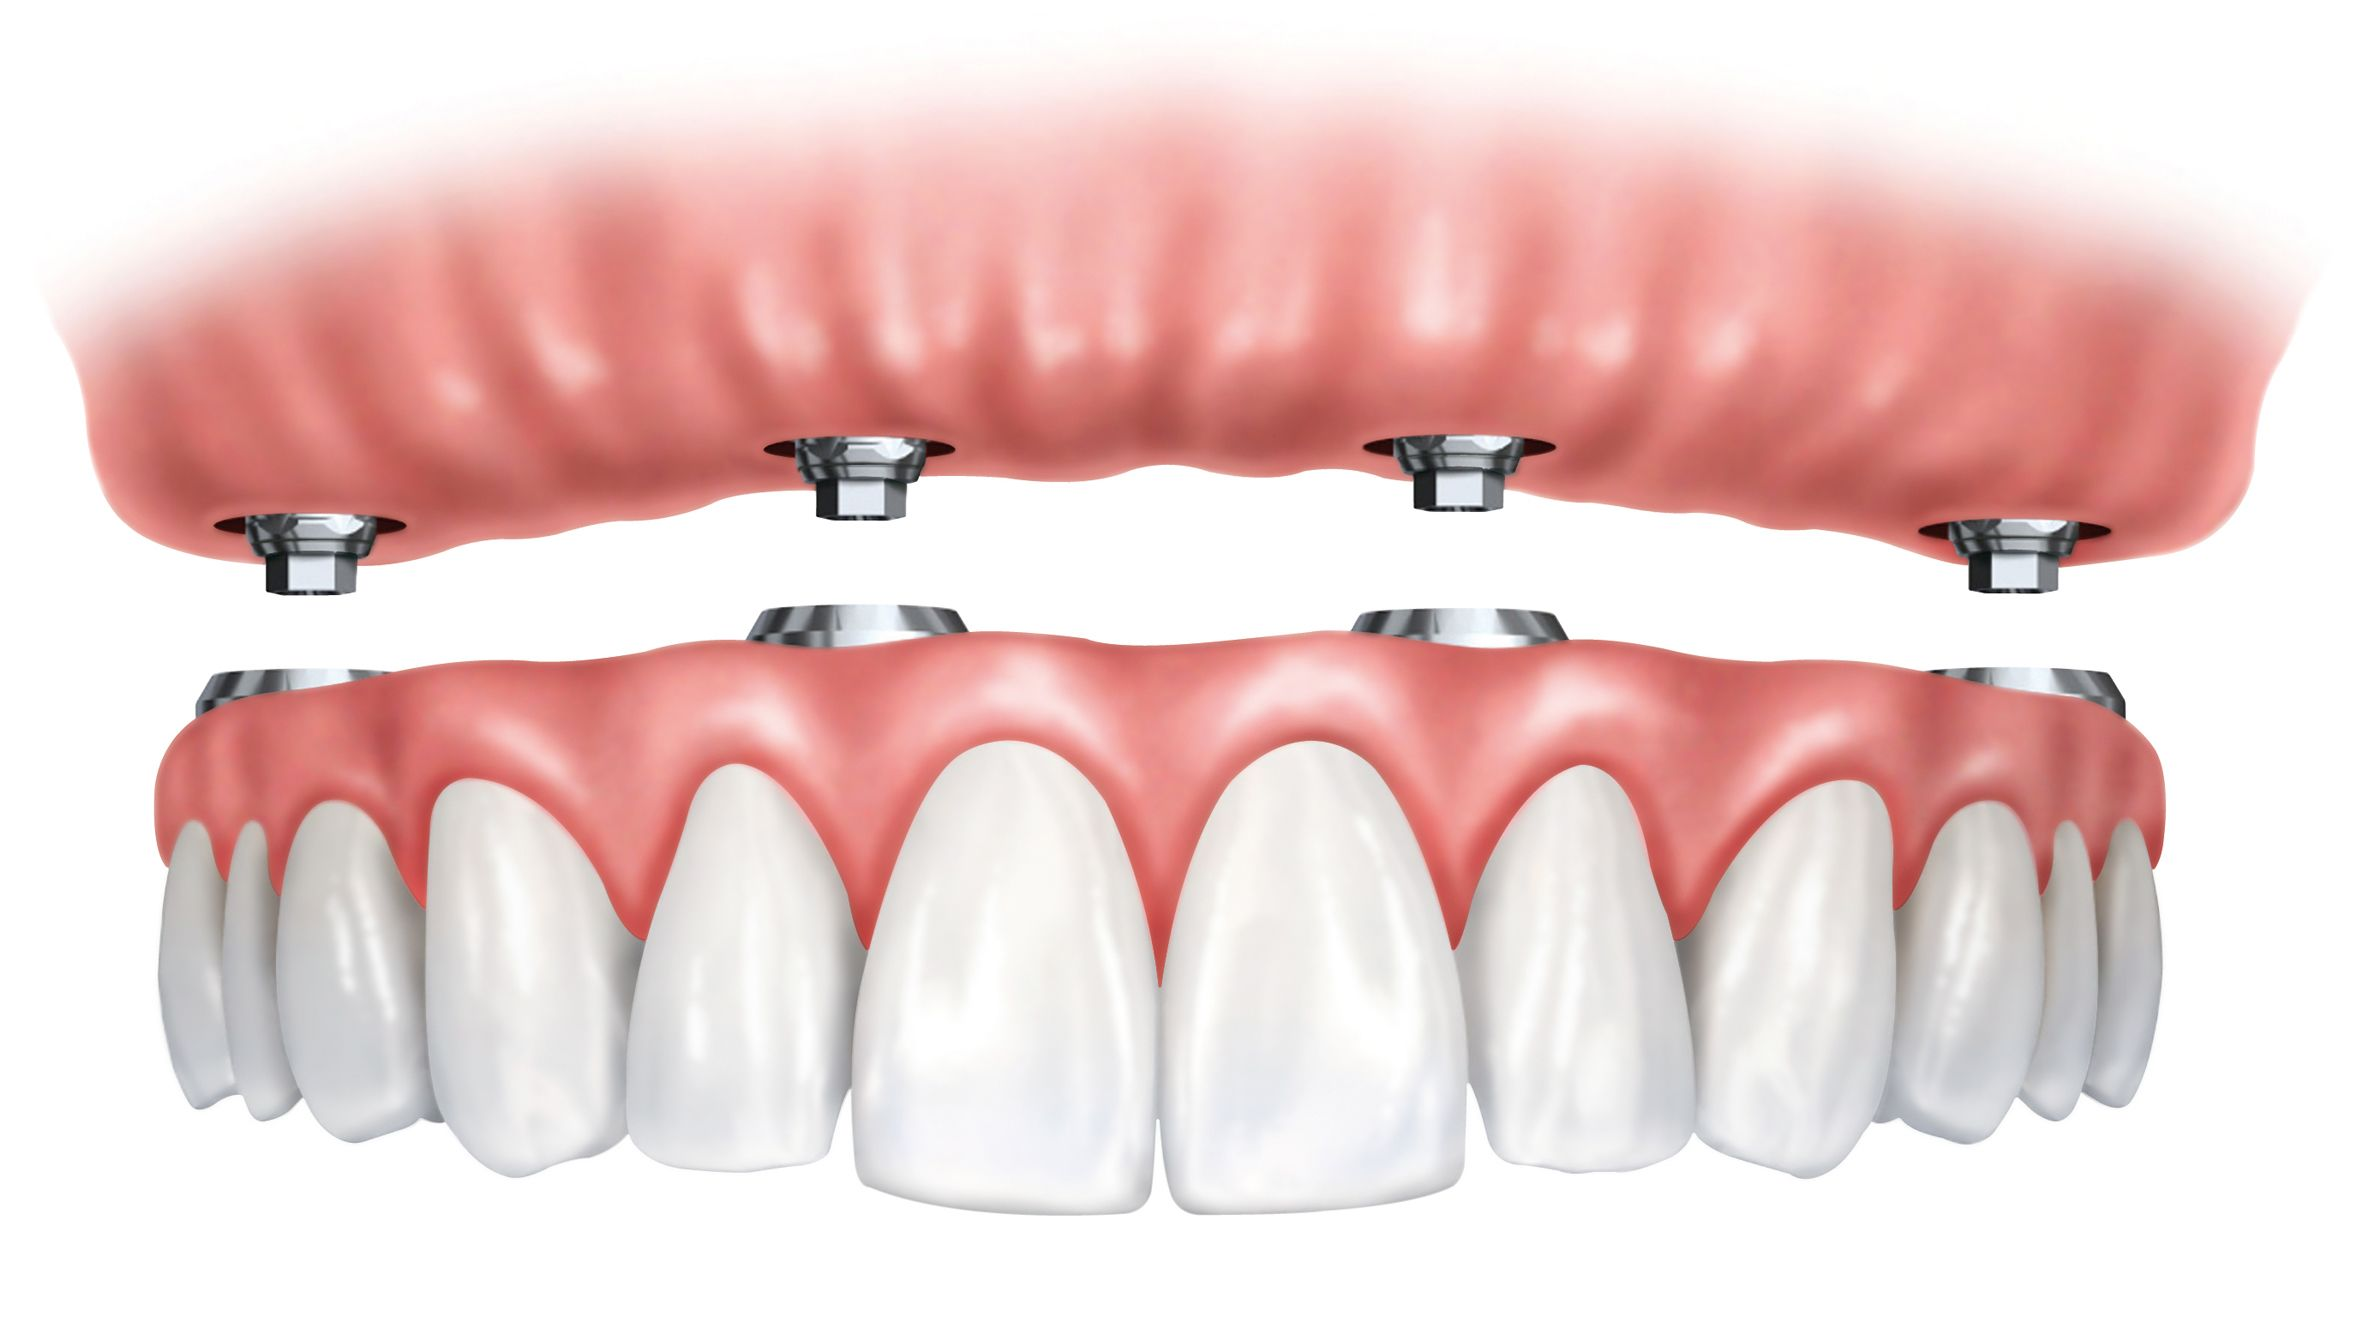 All-on-4 dental implants for full arch restoration